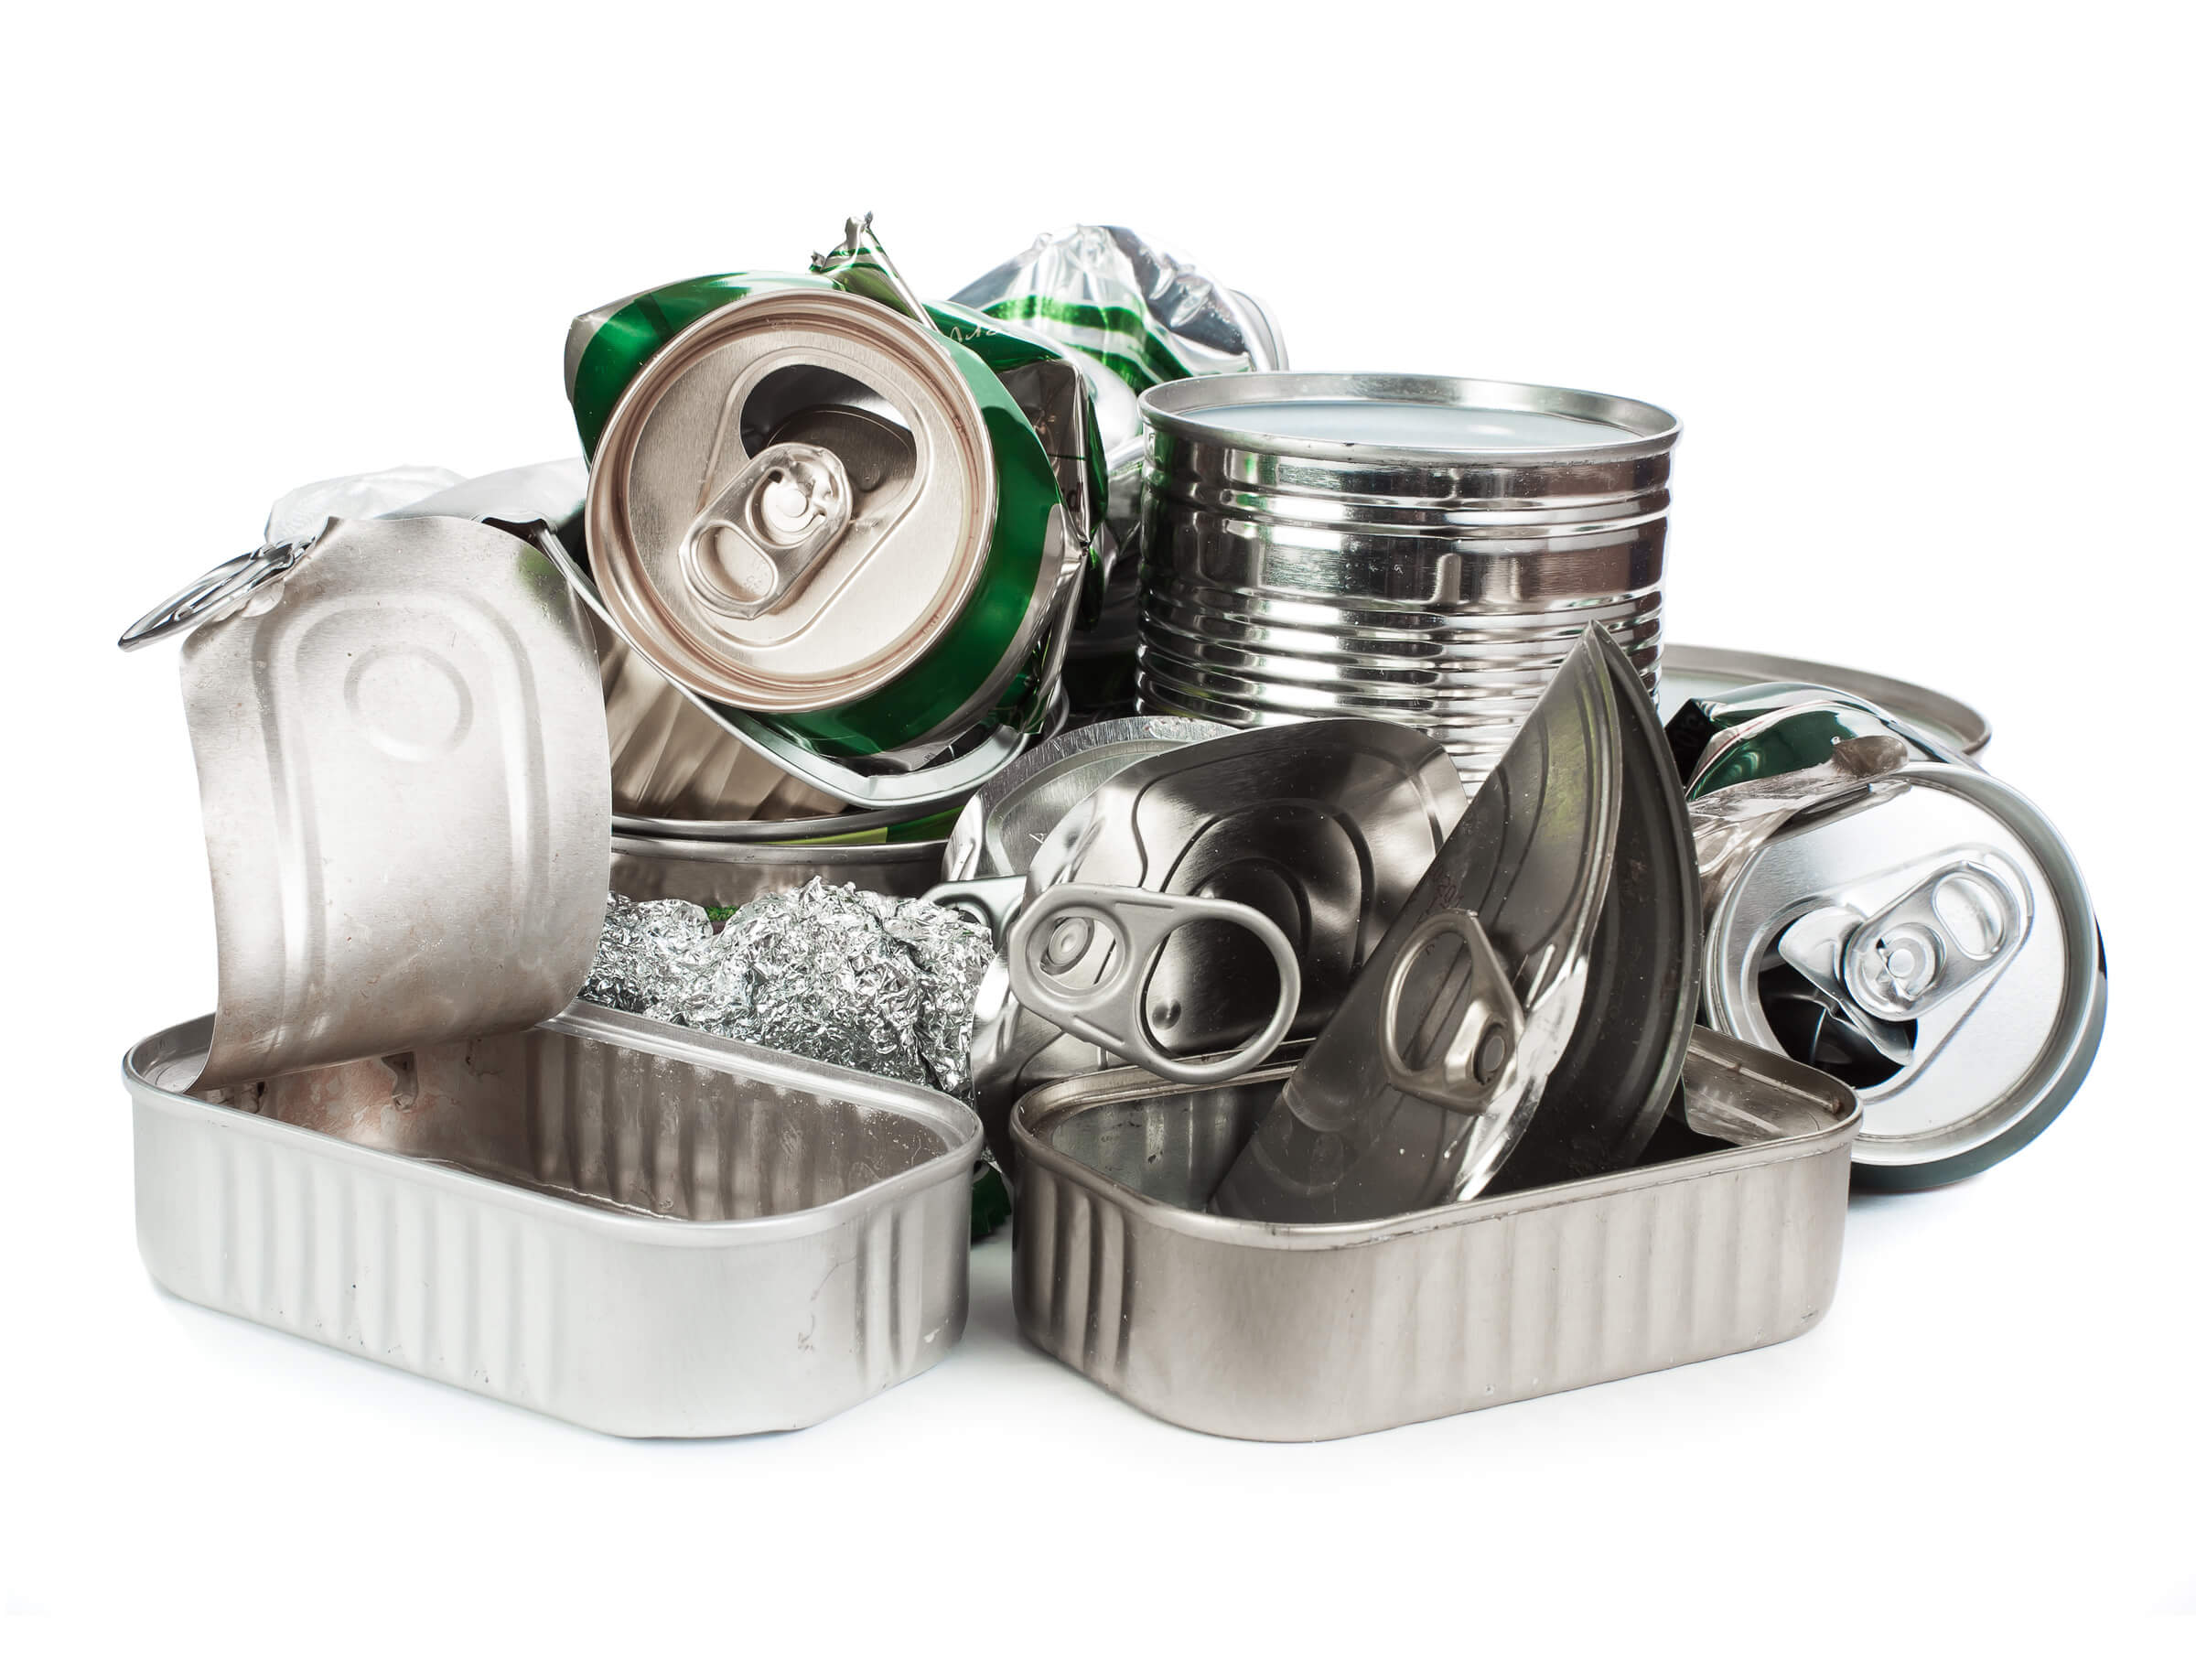 Waste from production such as food cans and aluminium cans